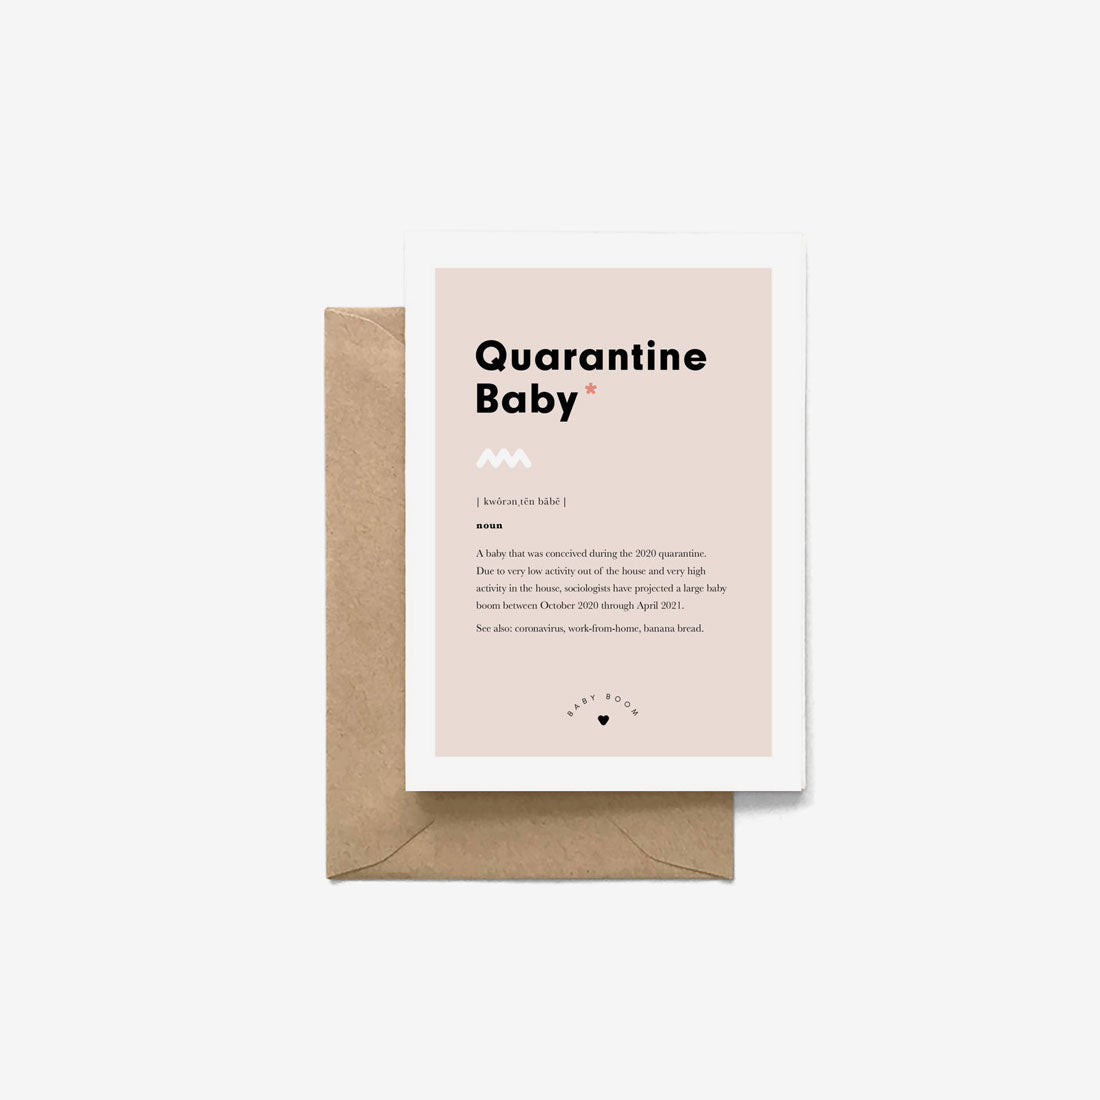 New Baby Gift Card - Quarantine Baby Definition